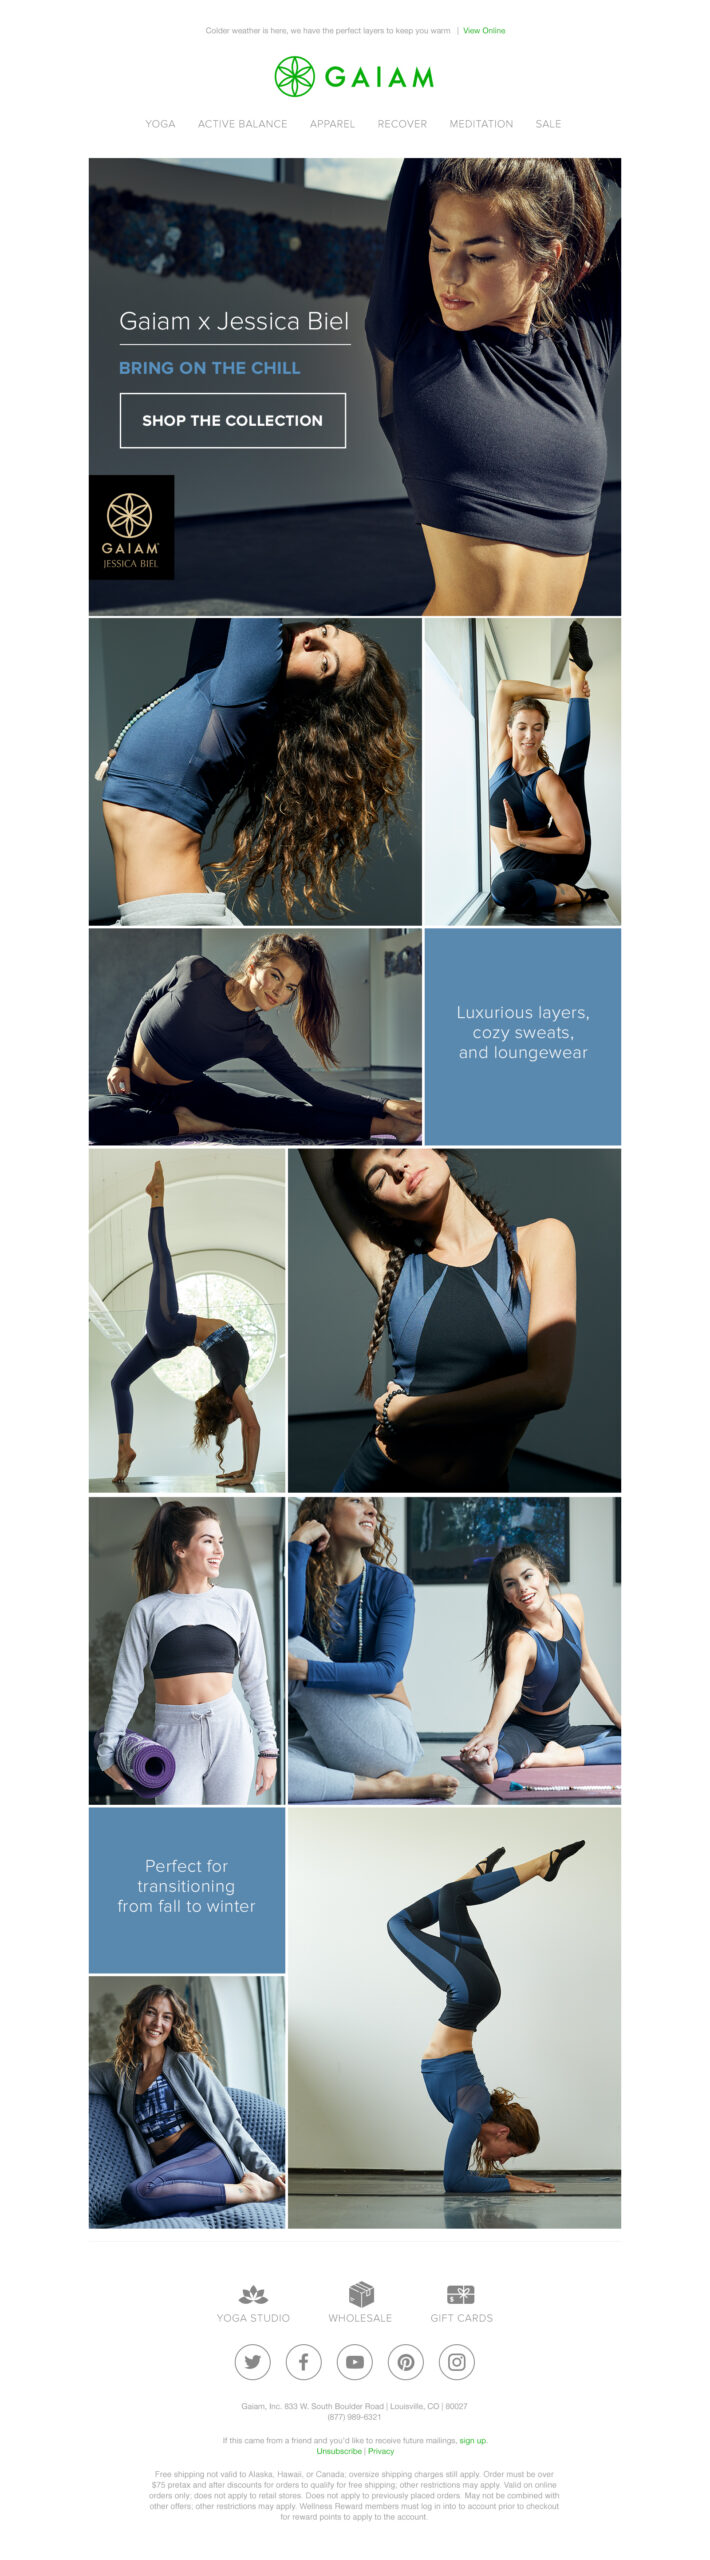 This tear sheet shows Jason Innes' shots for Gaiam in their email messaging to showcase Jessica Biel's line of clothing